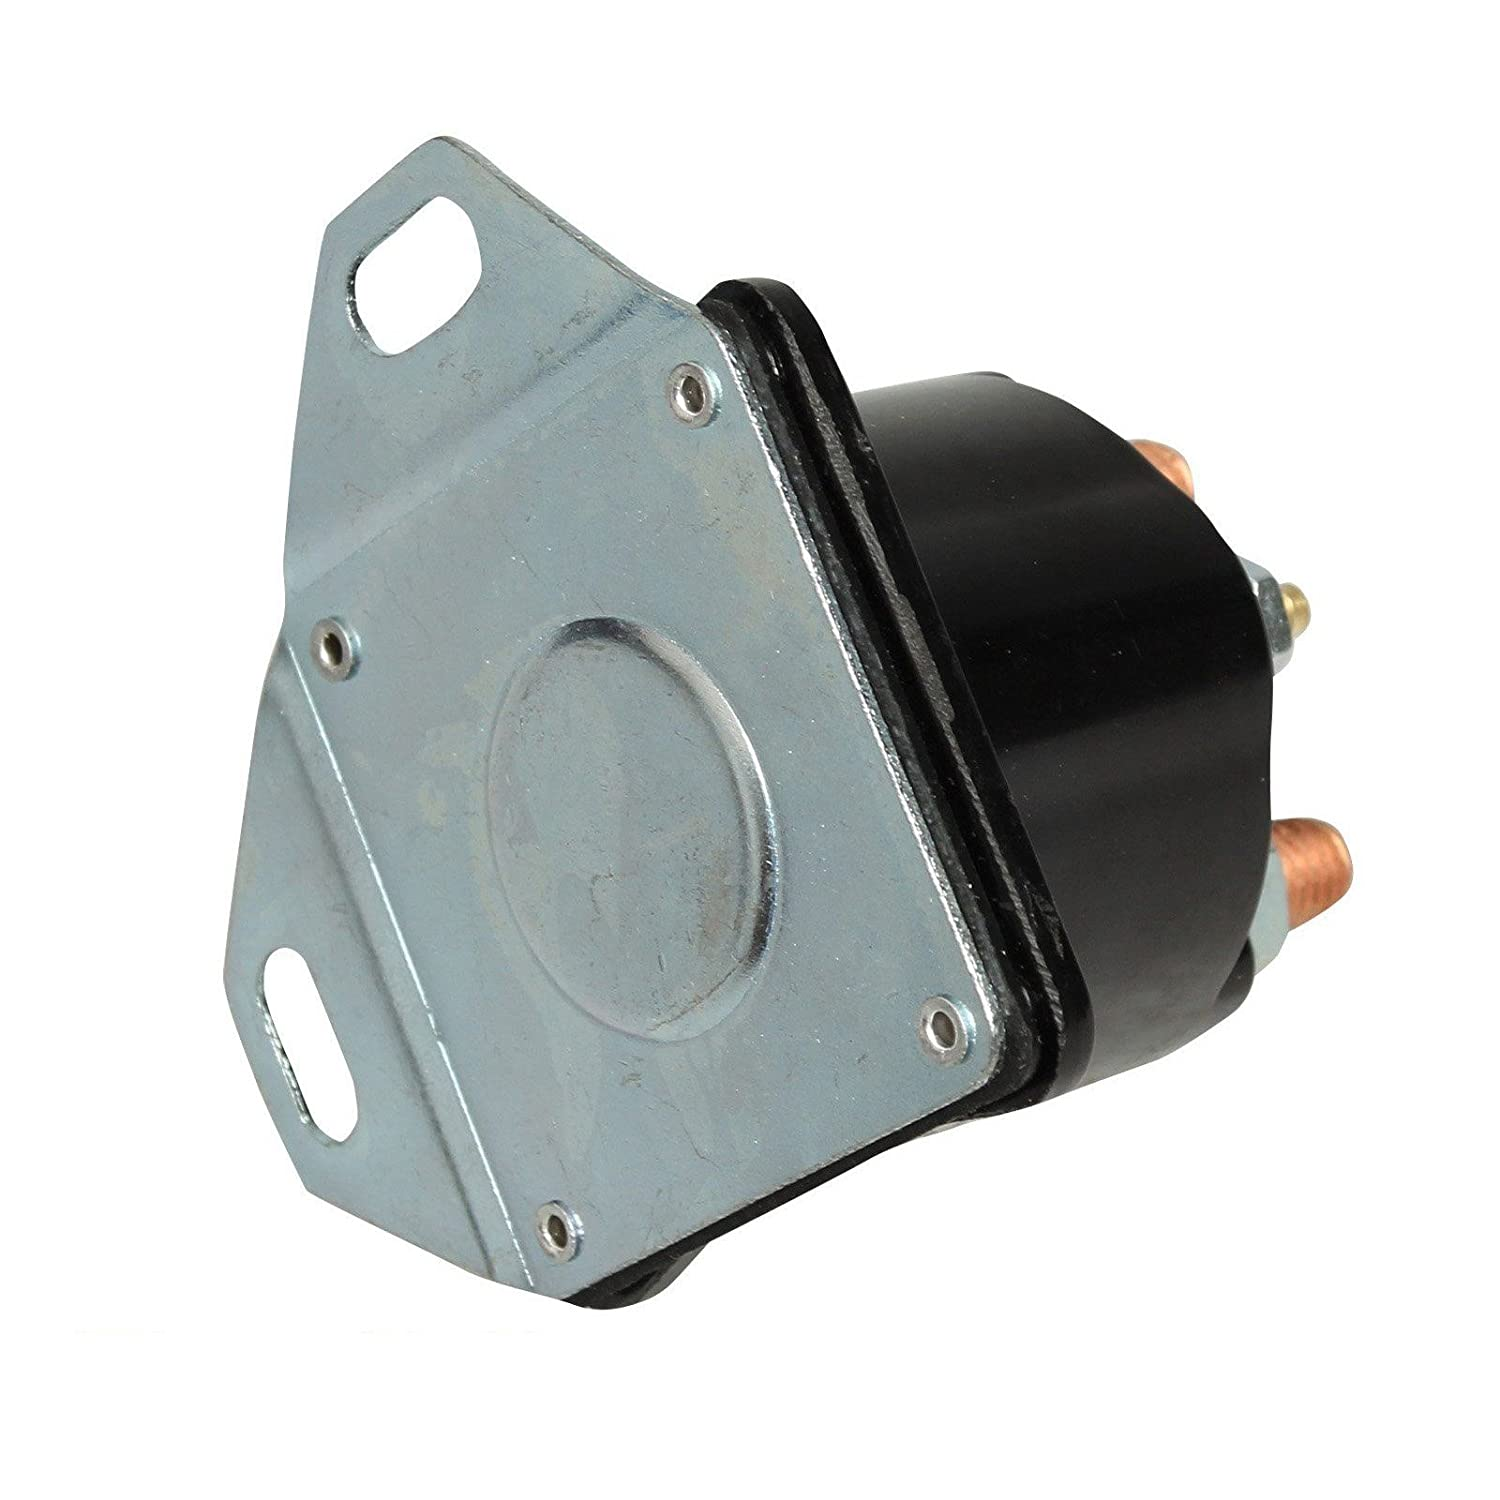 Glow Plug Glowplug Relay Solenoid Black For Ford 7.3L PowerStroke Diesel